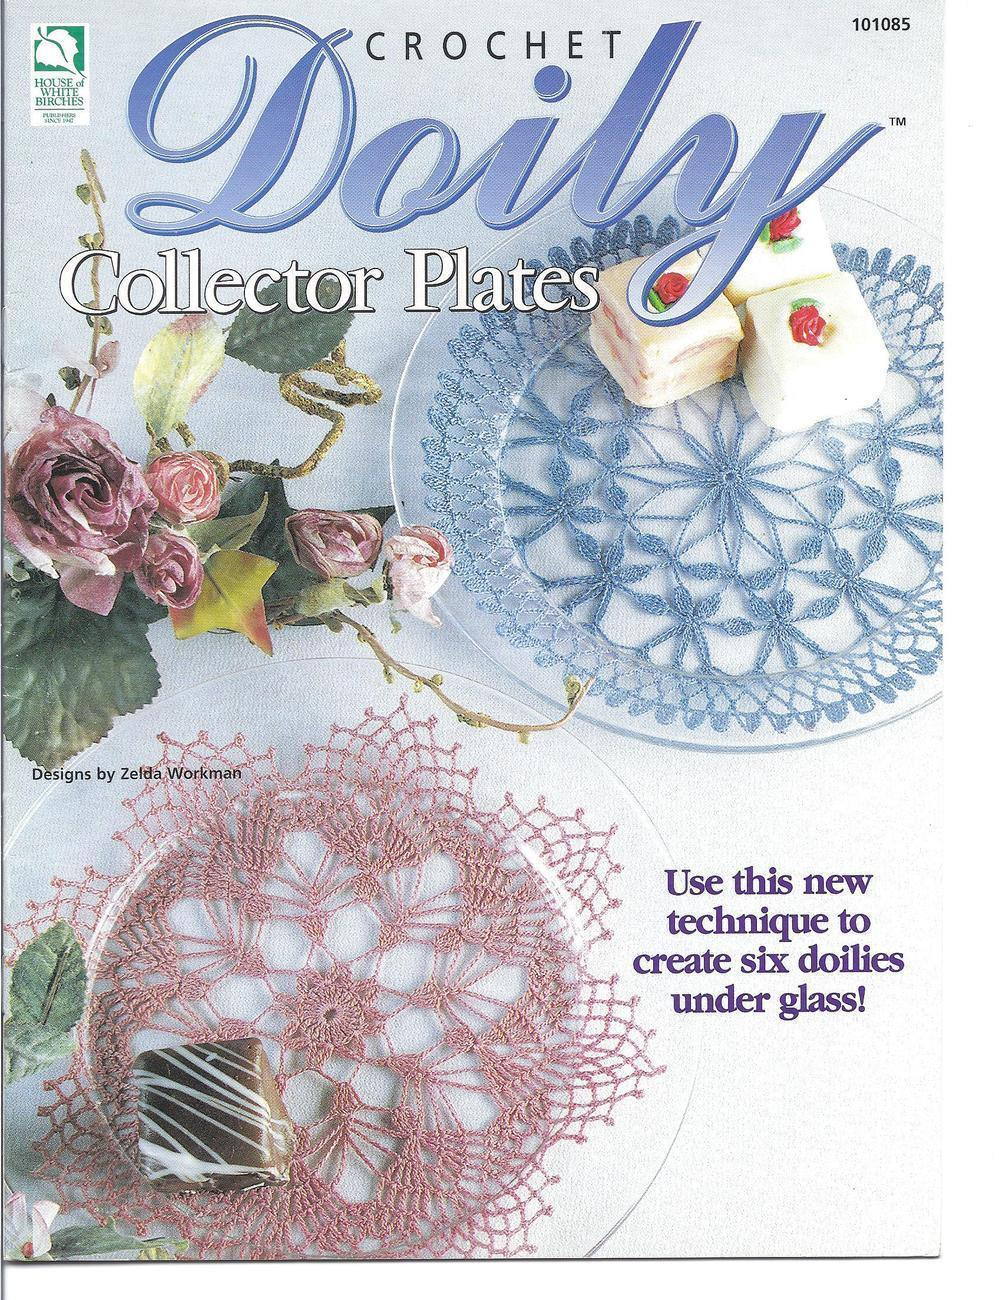 Doily Collector Plates Crochet Patterns OOP~New - $14.99